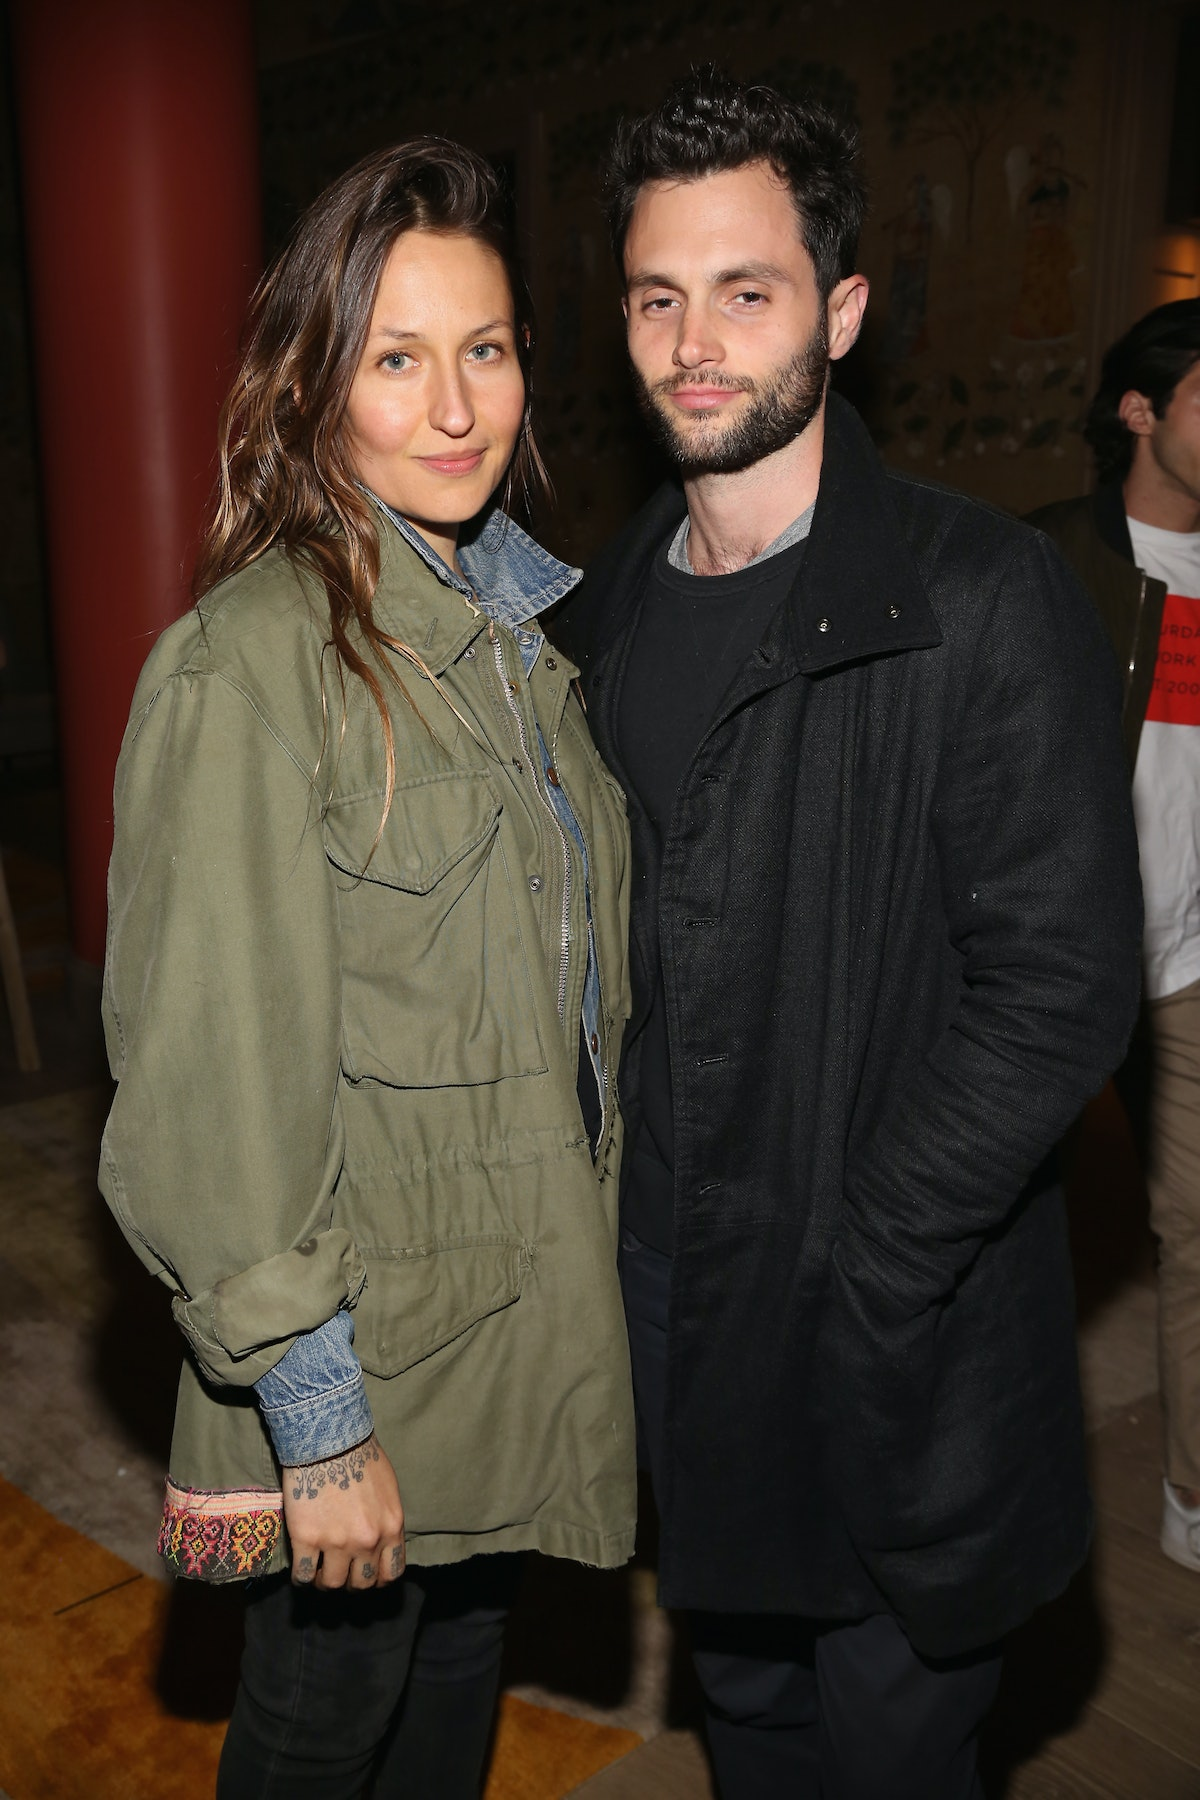 Domino Kirke and Penn Badgley attend an event.